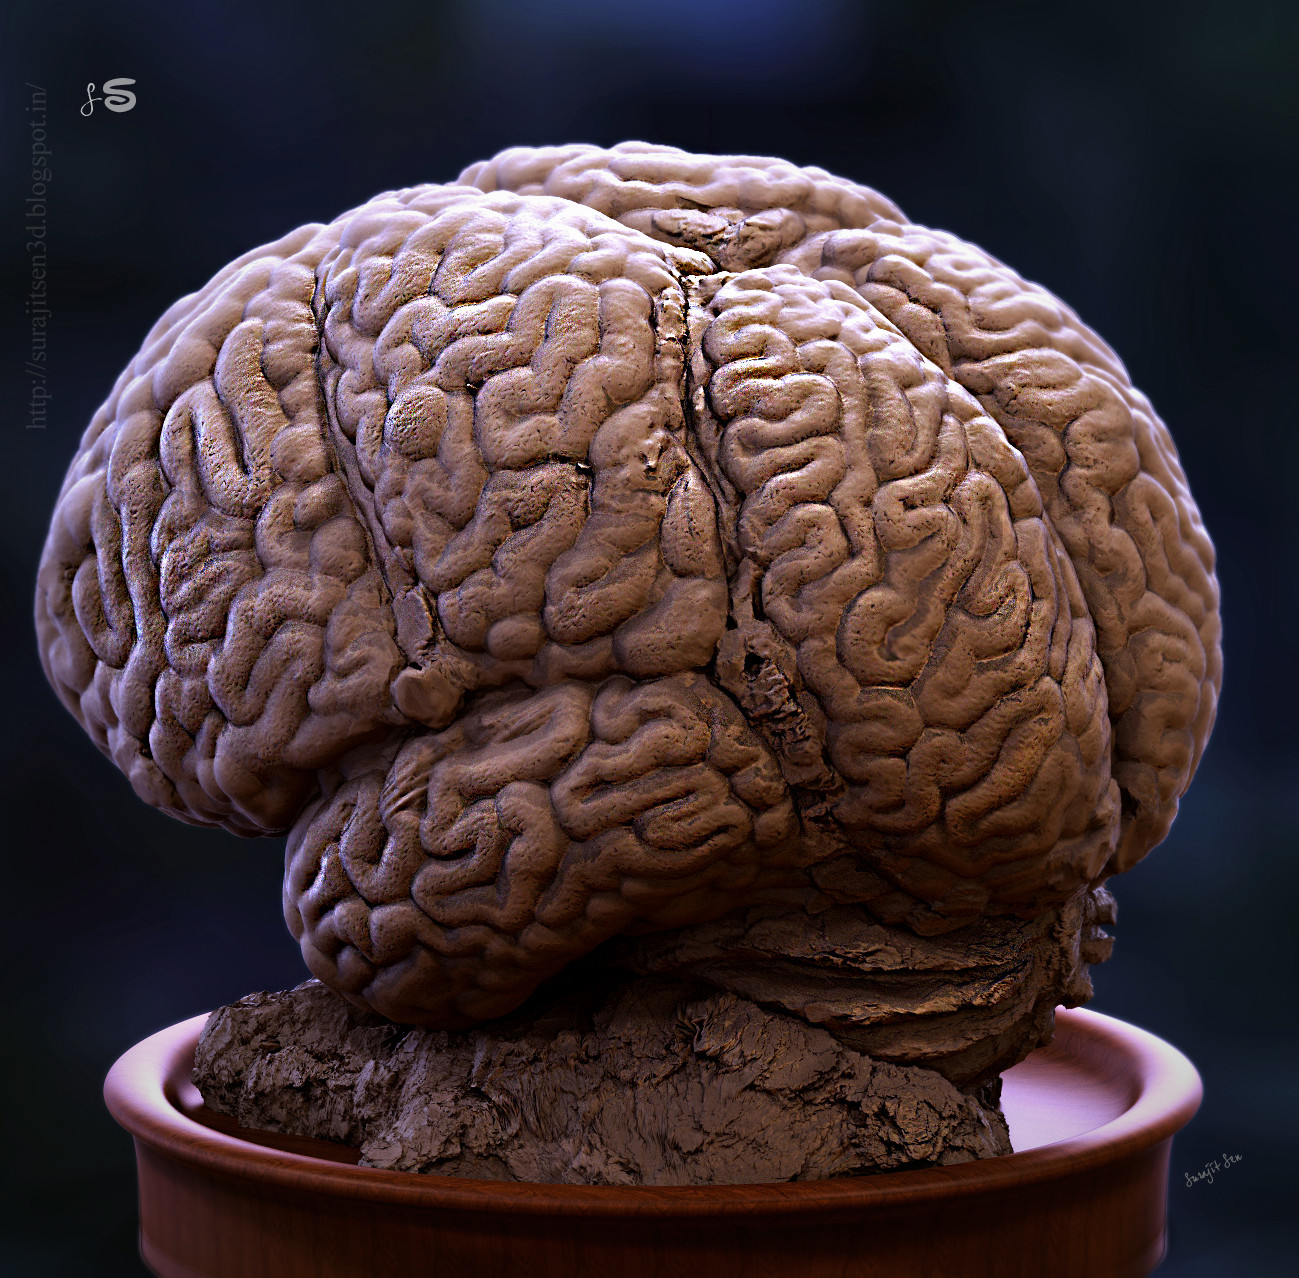 """"""" The Thinking Machine """" - my recent concept sculpt. Its dedicated to me. Wish to share."""